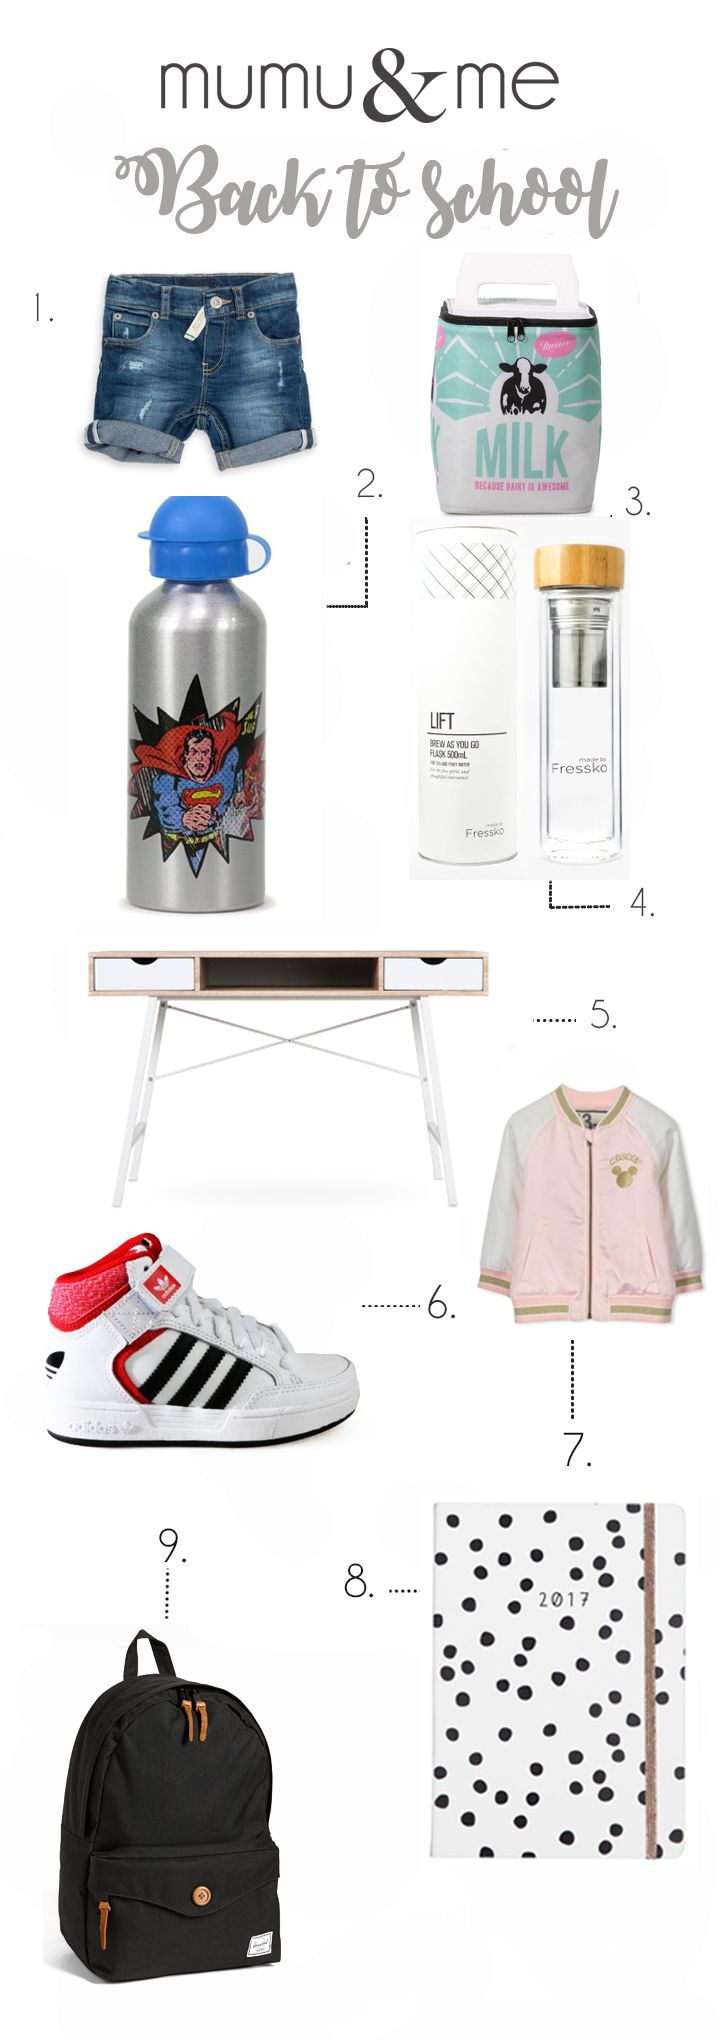 back to school products cool water bottle kids fashion desk